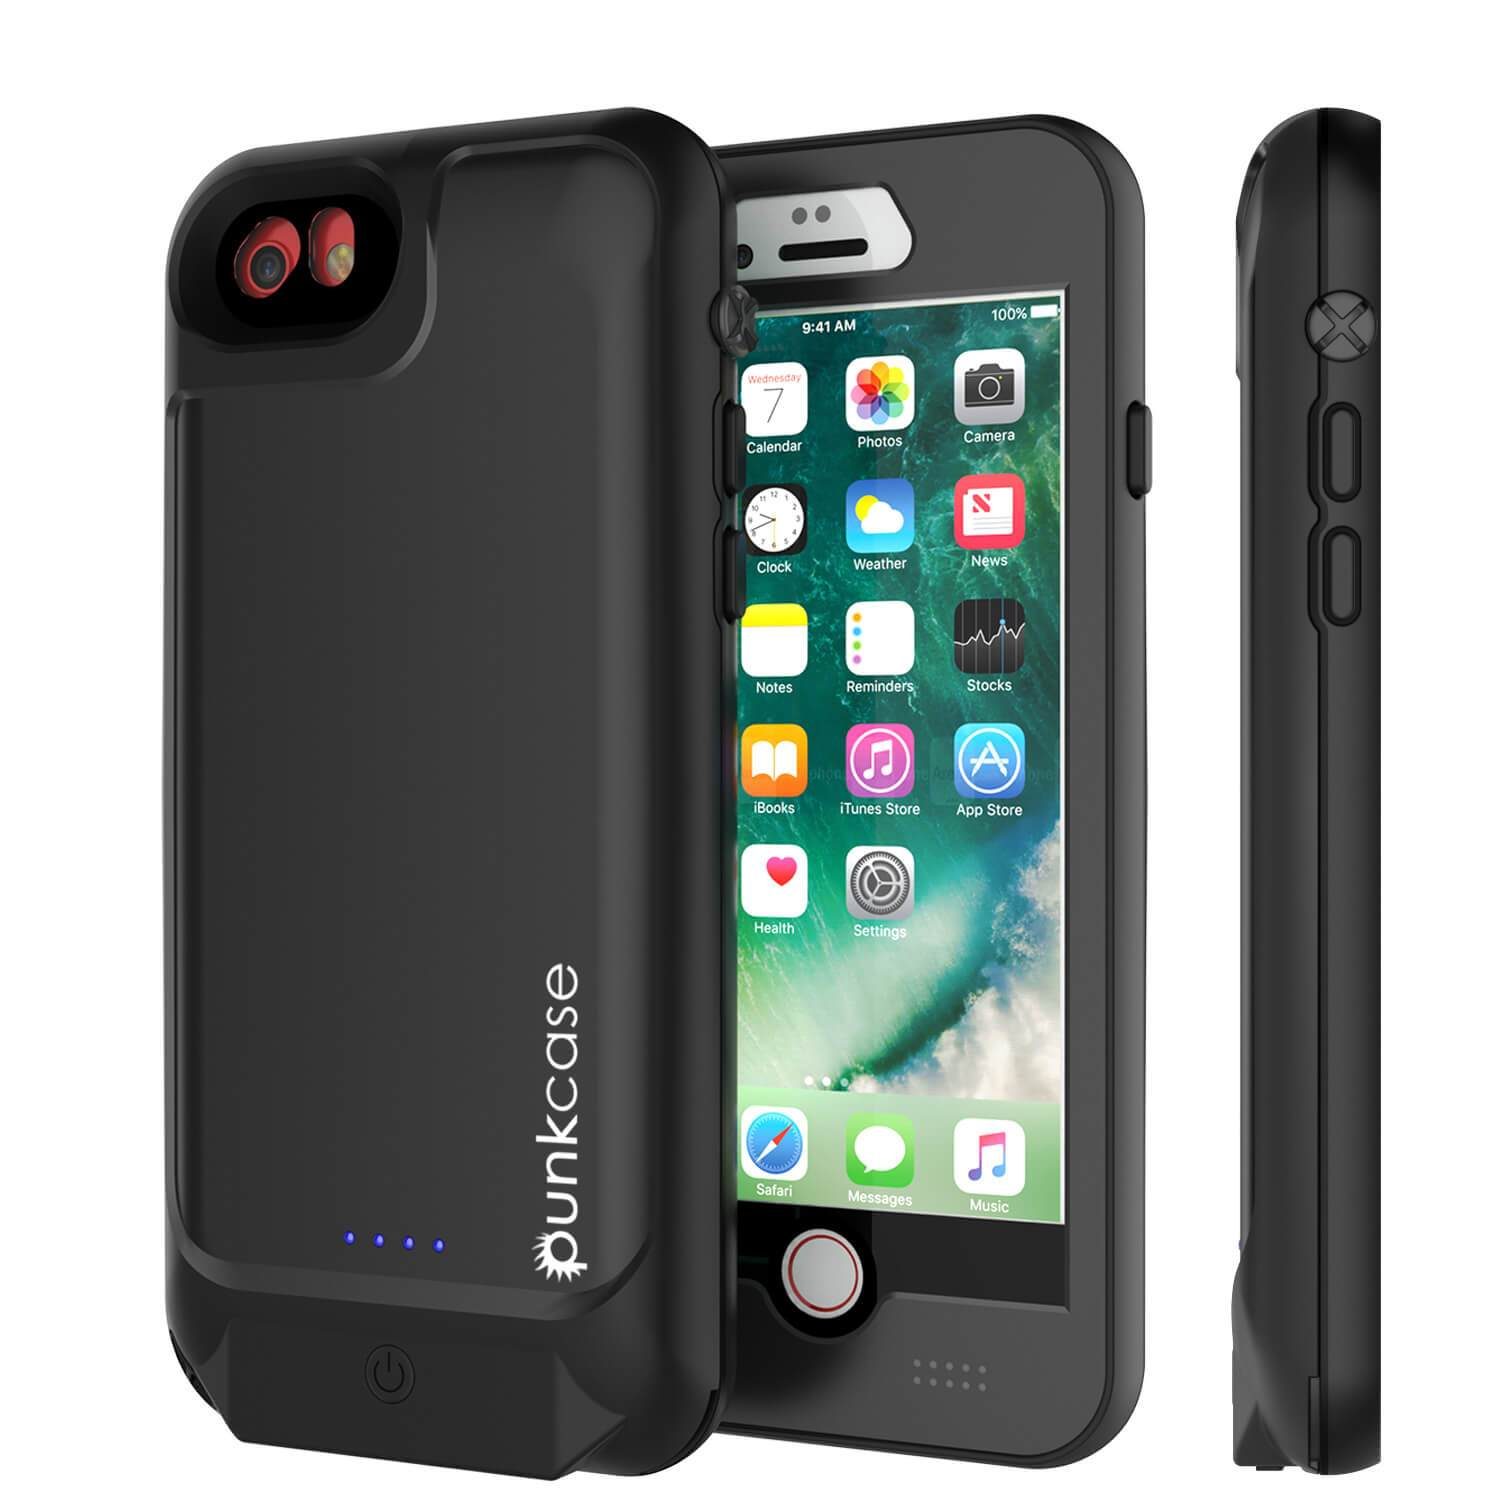 iPhone 6/6s Battery Case PunkJuice  - Waterproof Slim Portable Power Juice Bank with 2750mAh High Capacity (Jet Black)